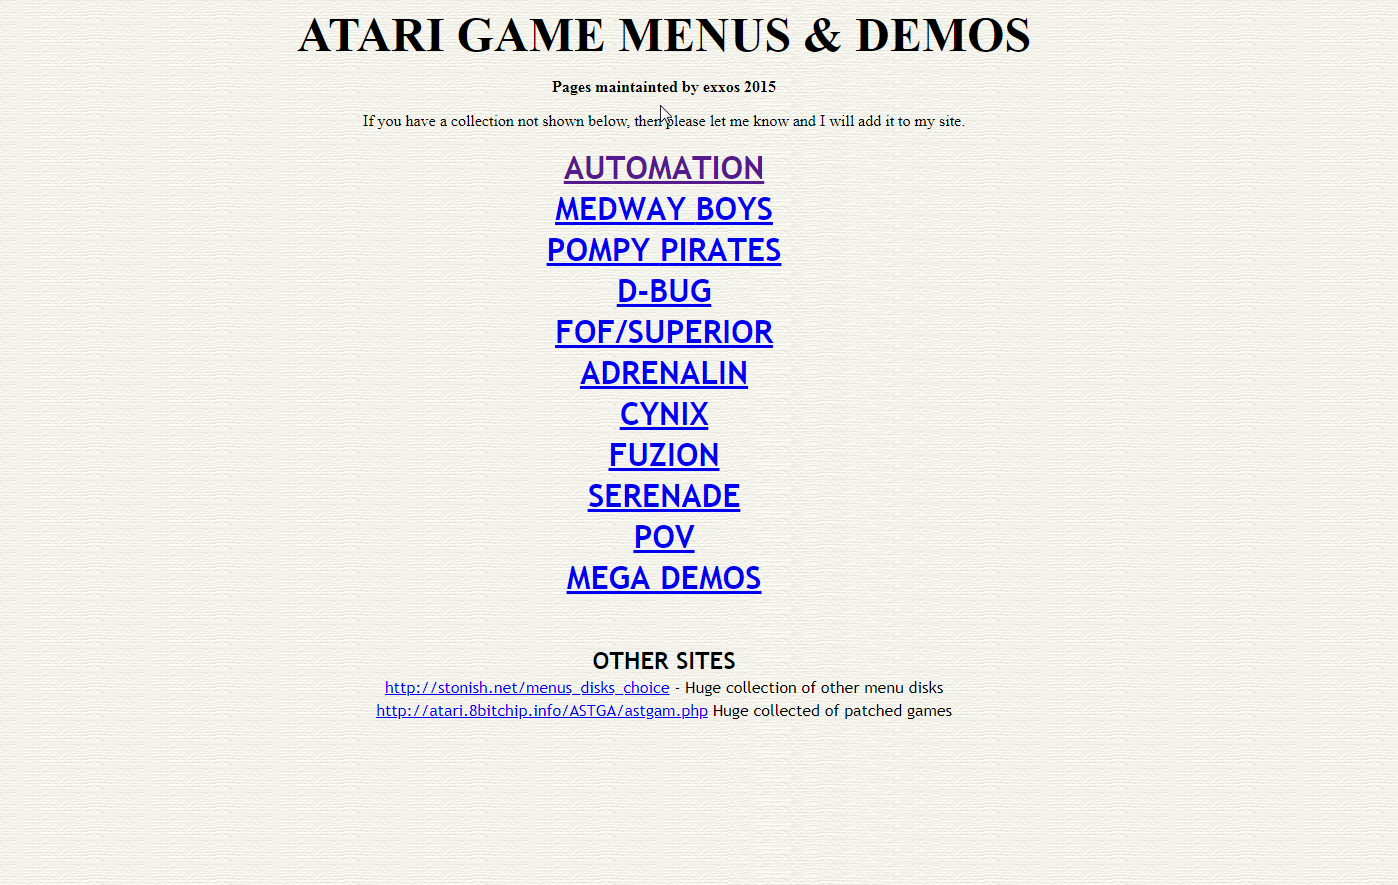 Screenshot of website Atari game menus and demos